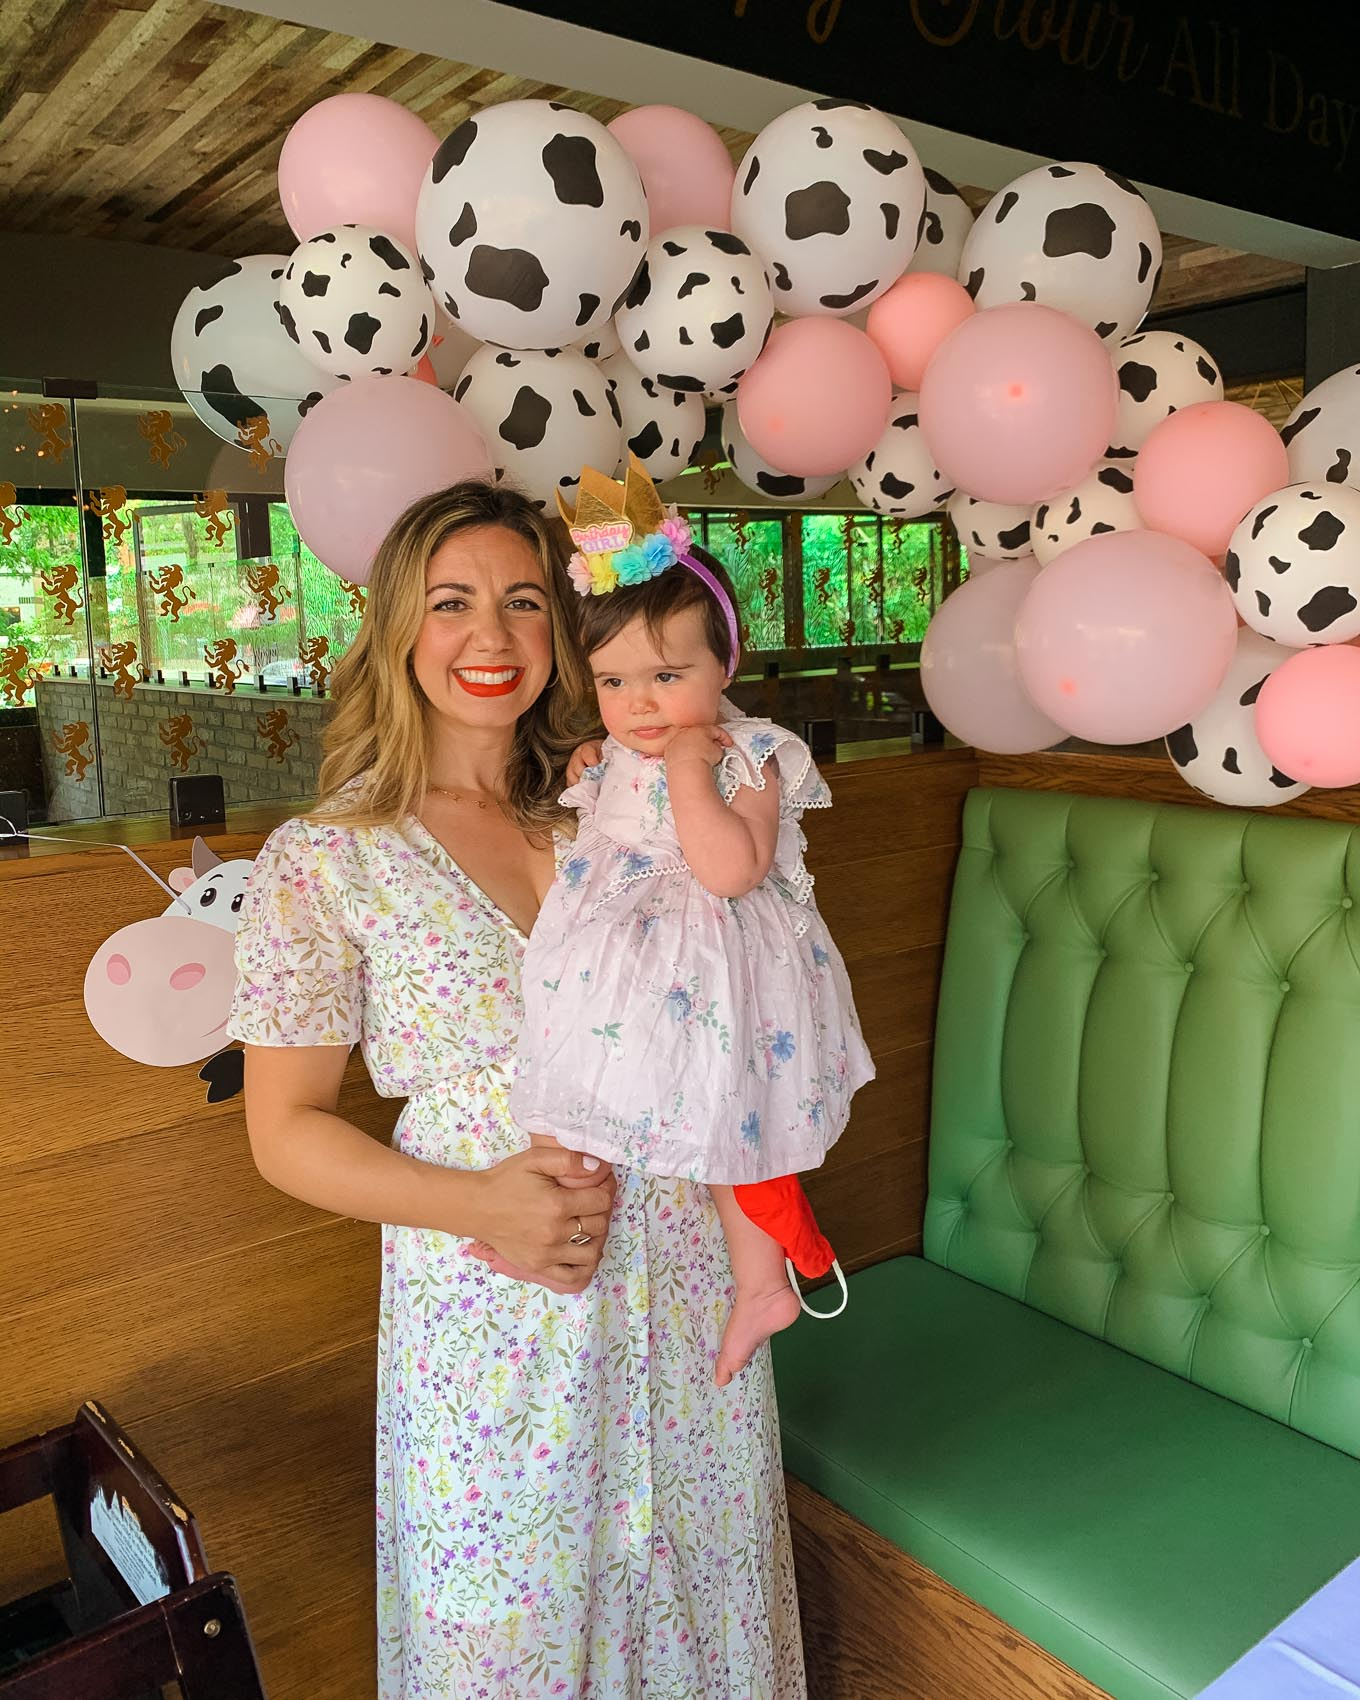 1st Birthday by popular Chicago lifestyle blog, Glass of Glam: image of a Mom holding her 1 year old baby daughter standing next to a Amazon QIYNAO White and Blacke Dairy Cow Happy Birthday Banner, Amazon Cow Print Beverage Napkins, Amazon Finypa Funny Cow Party Decorations Balloon 85pcs Arch Garland.